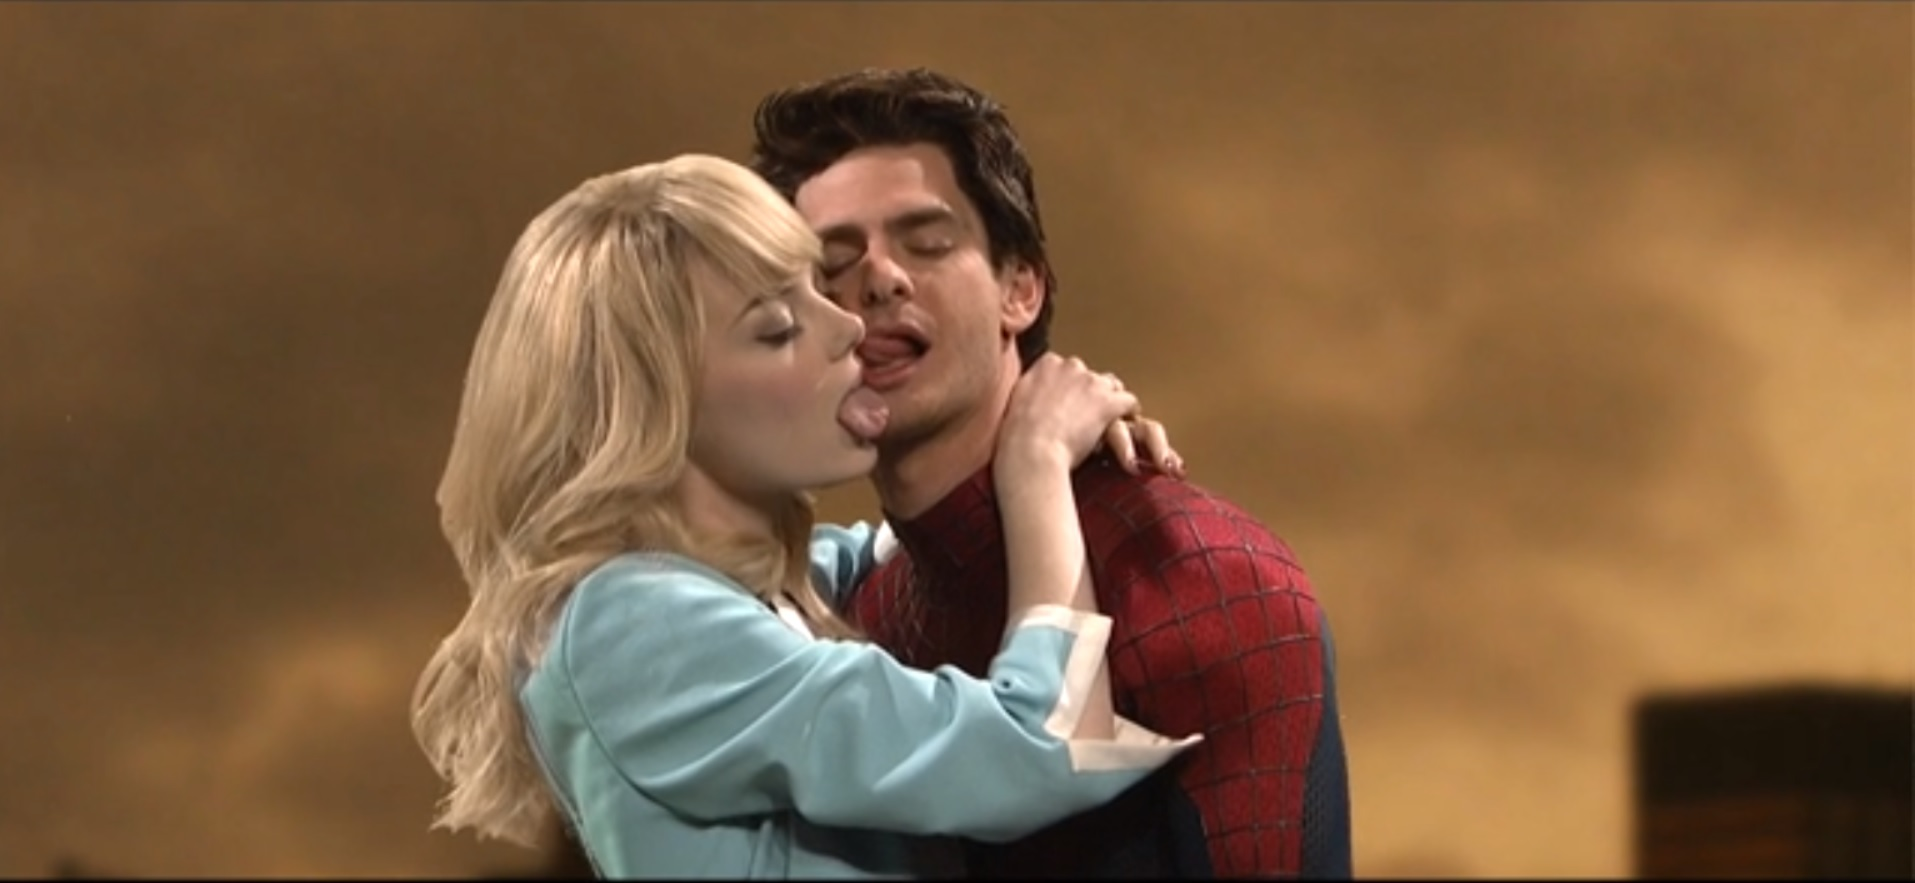 spider man kiss